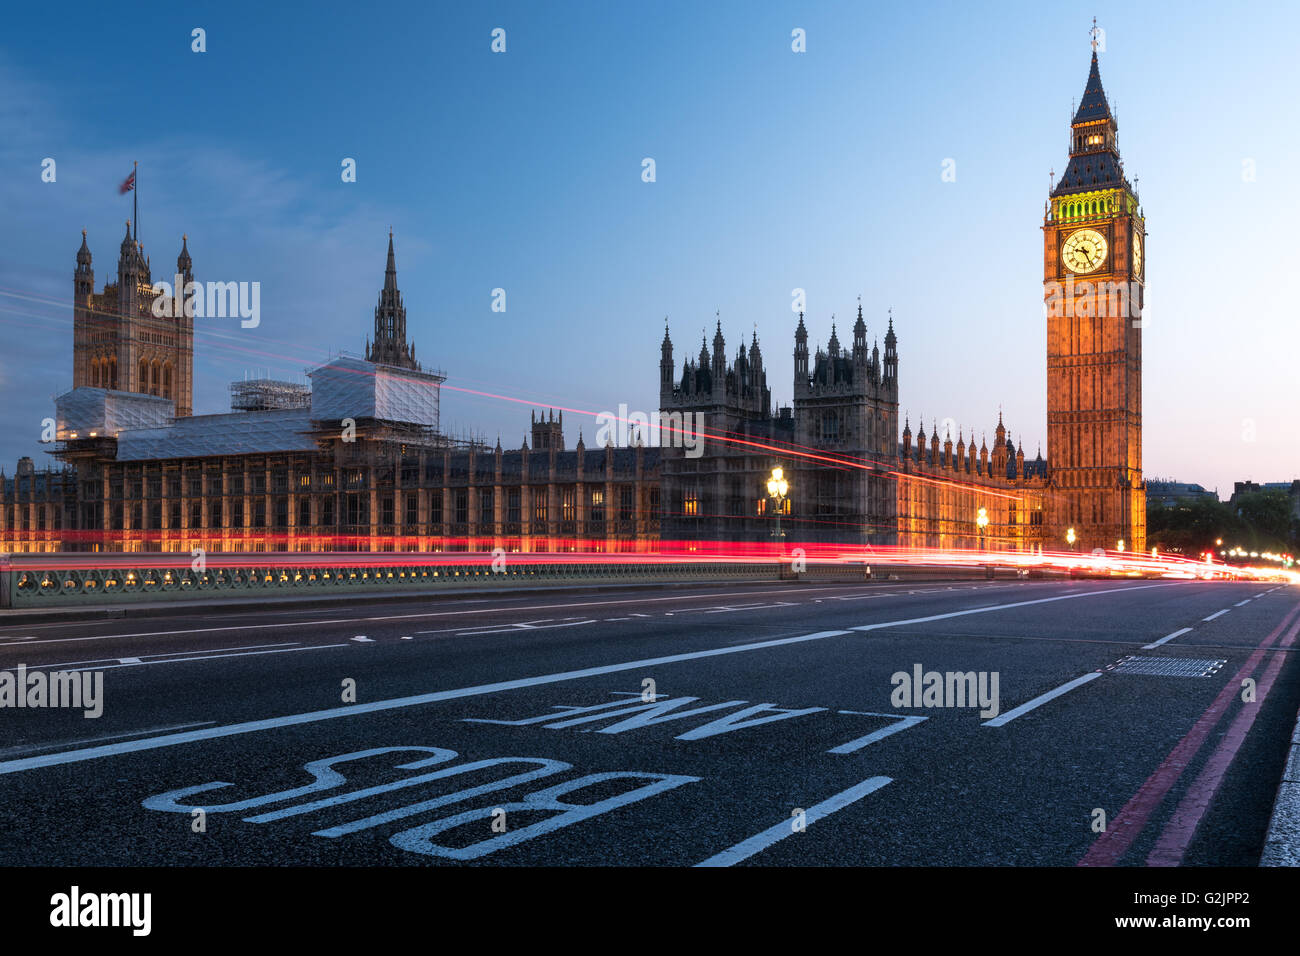 Houses of Parliament, Big Ben and Westminster Bridge in London at night - Stock Image